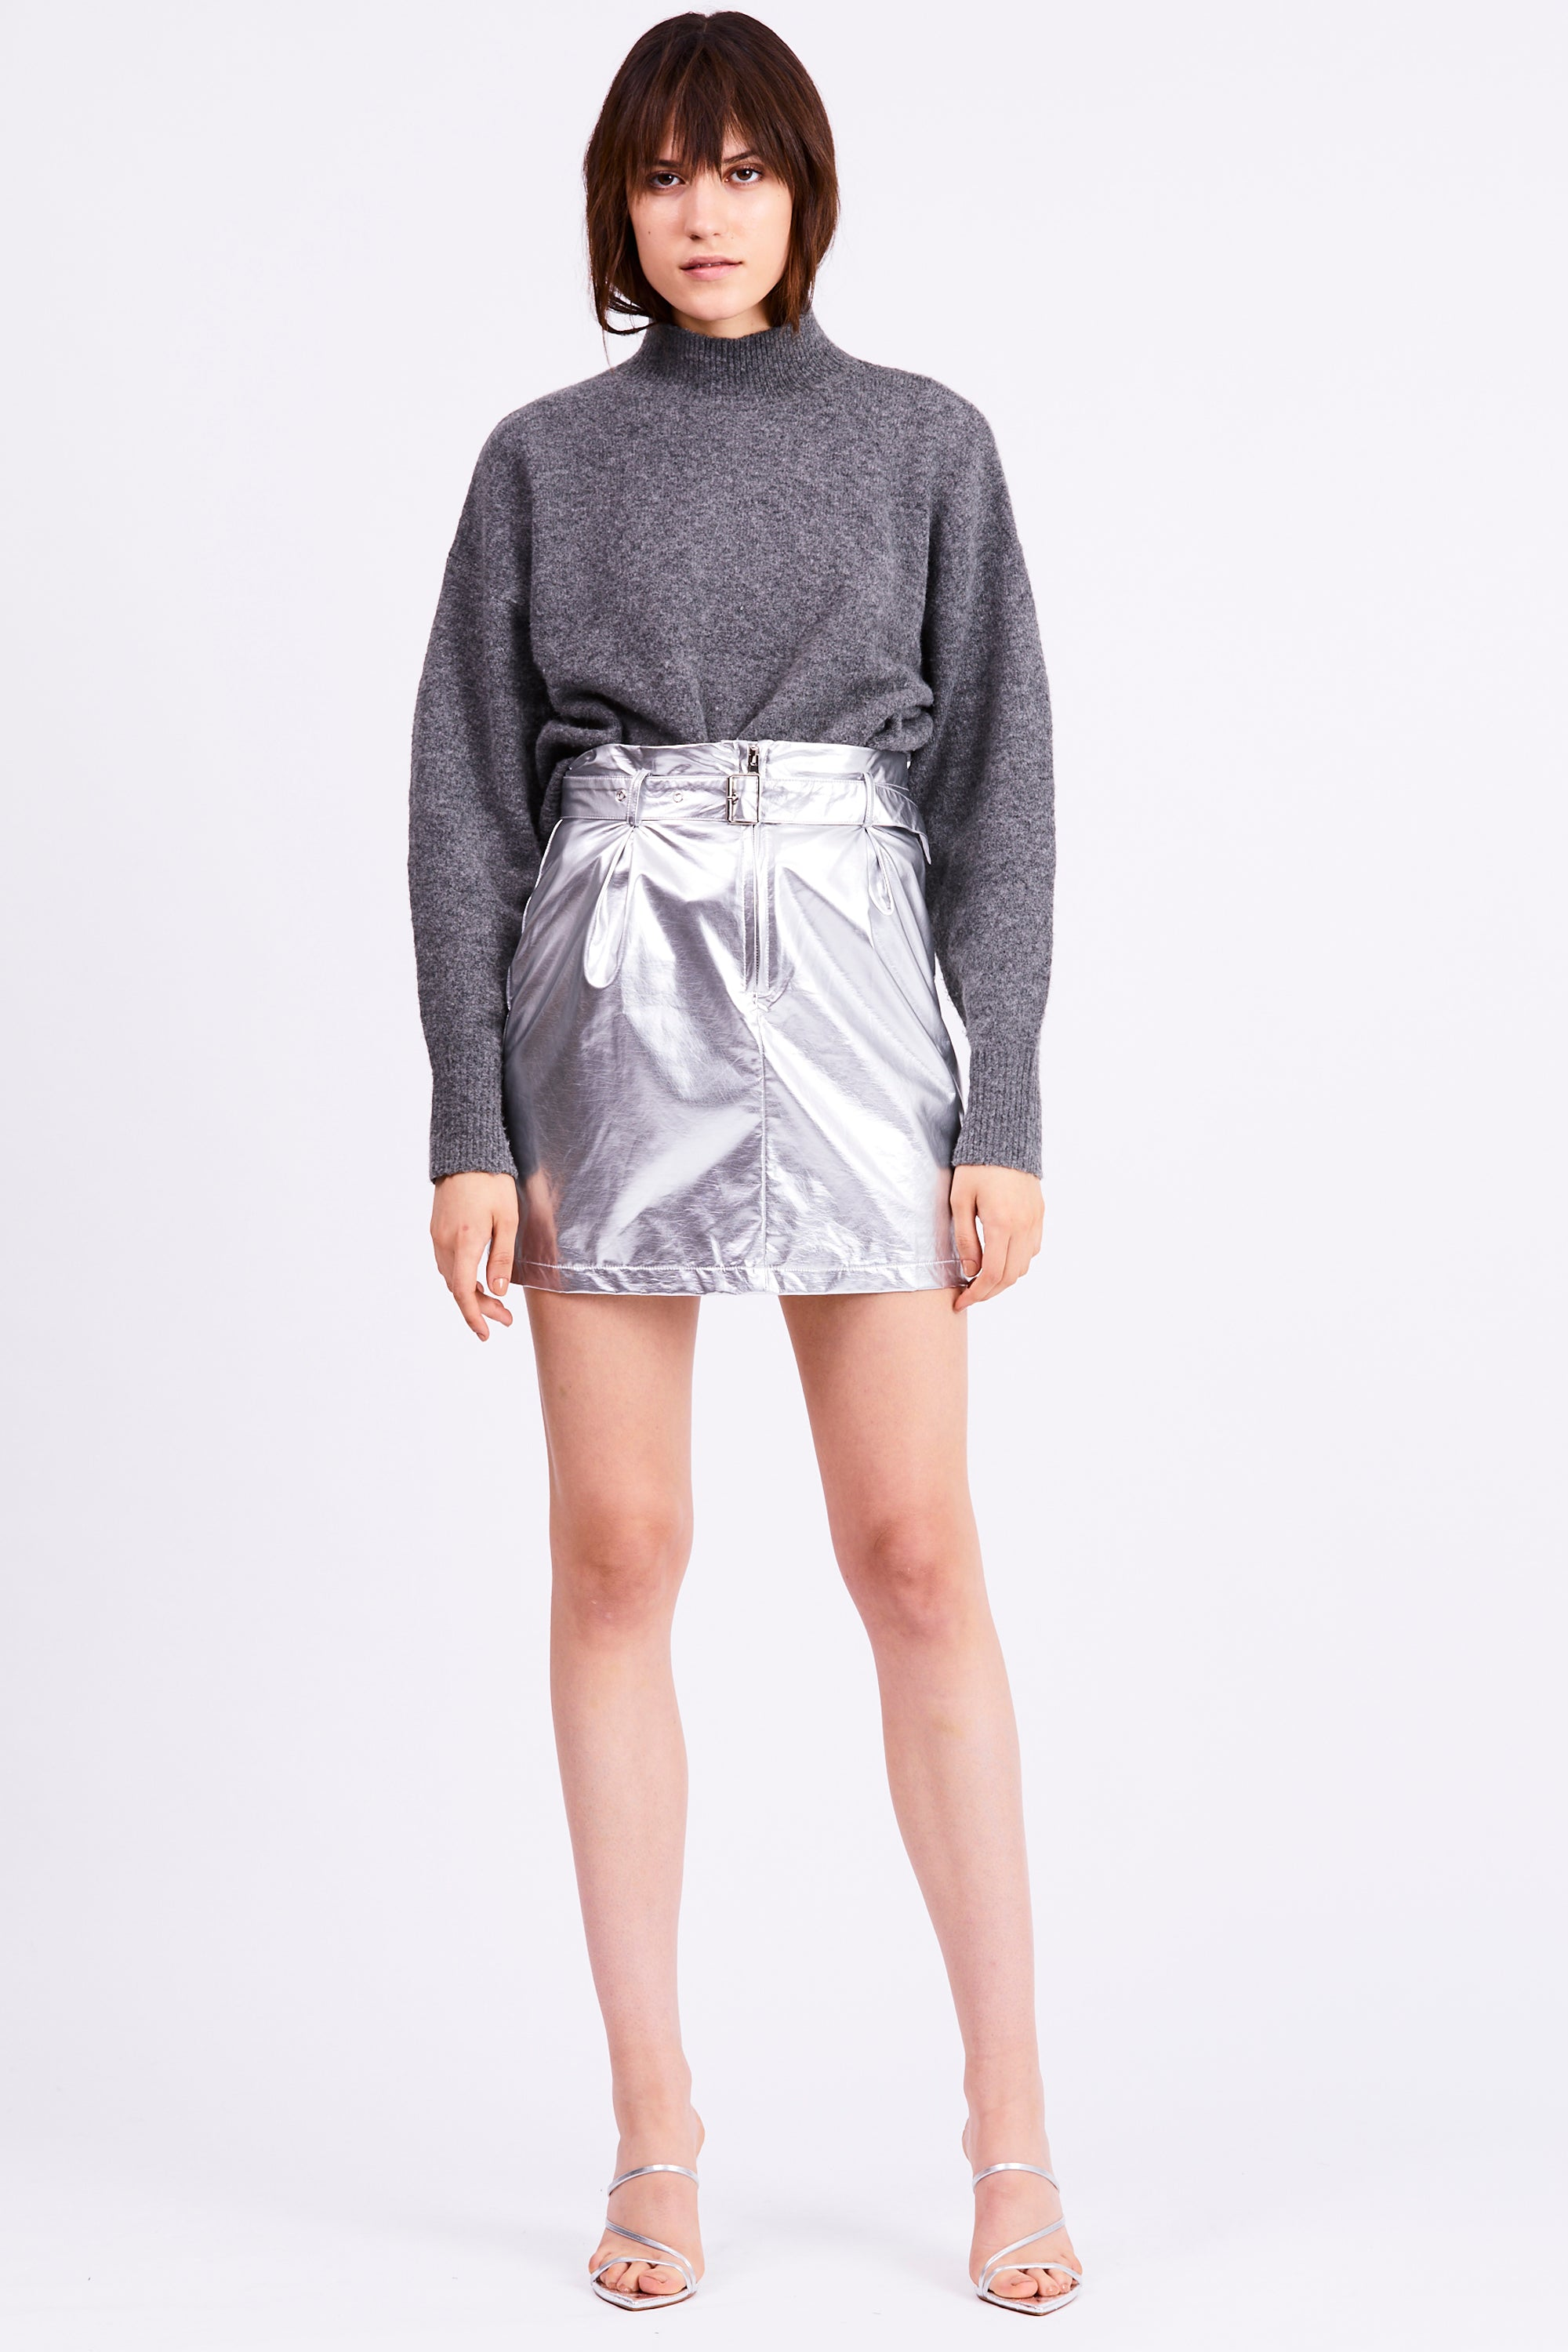 SILVER SURFER MINI SKIRT | SILVER